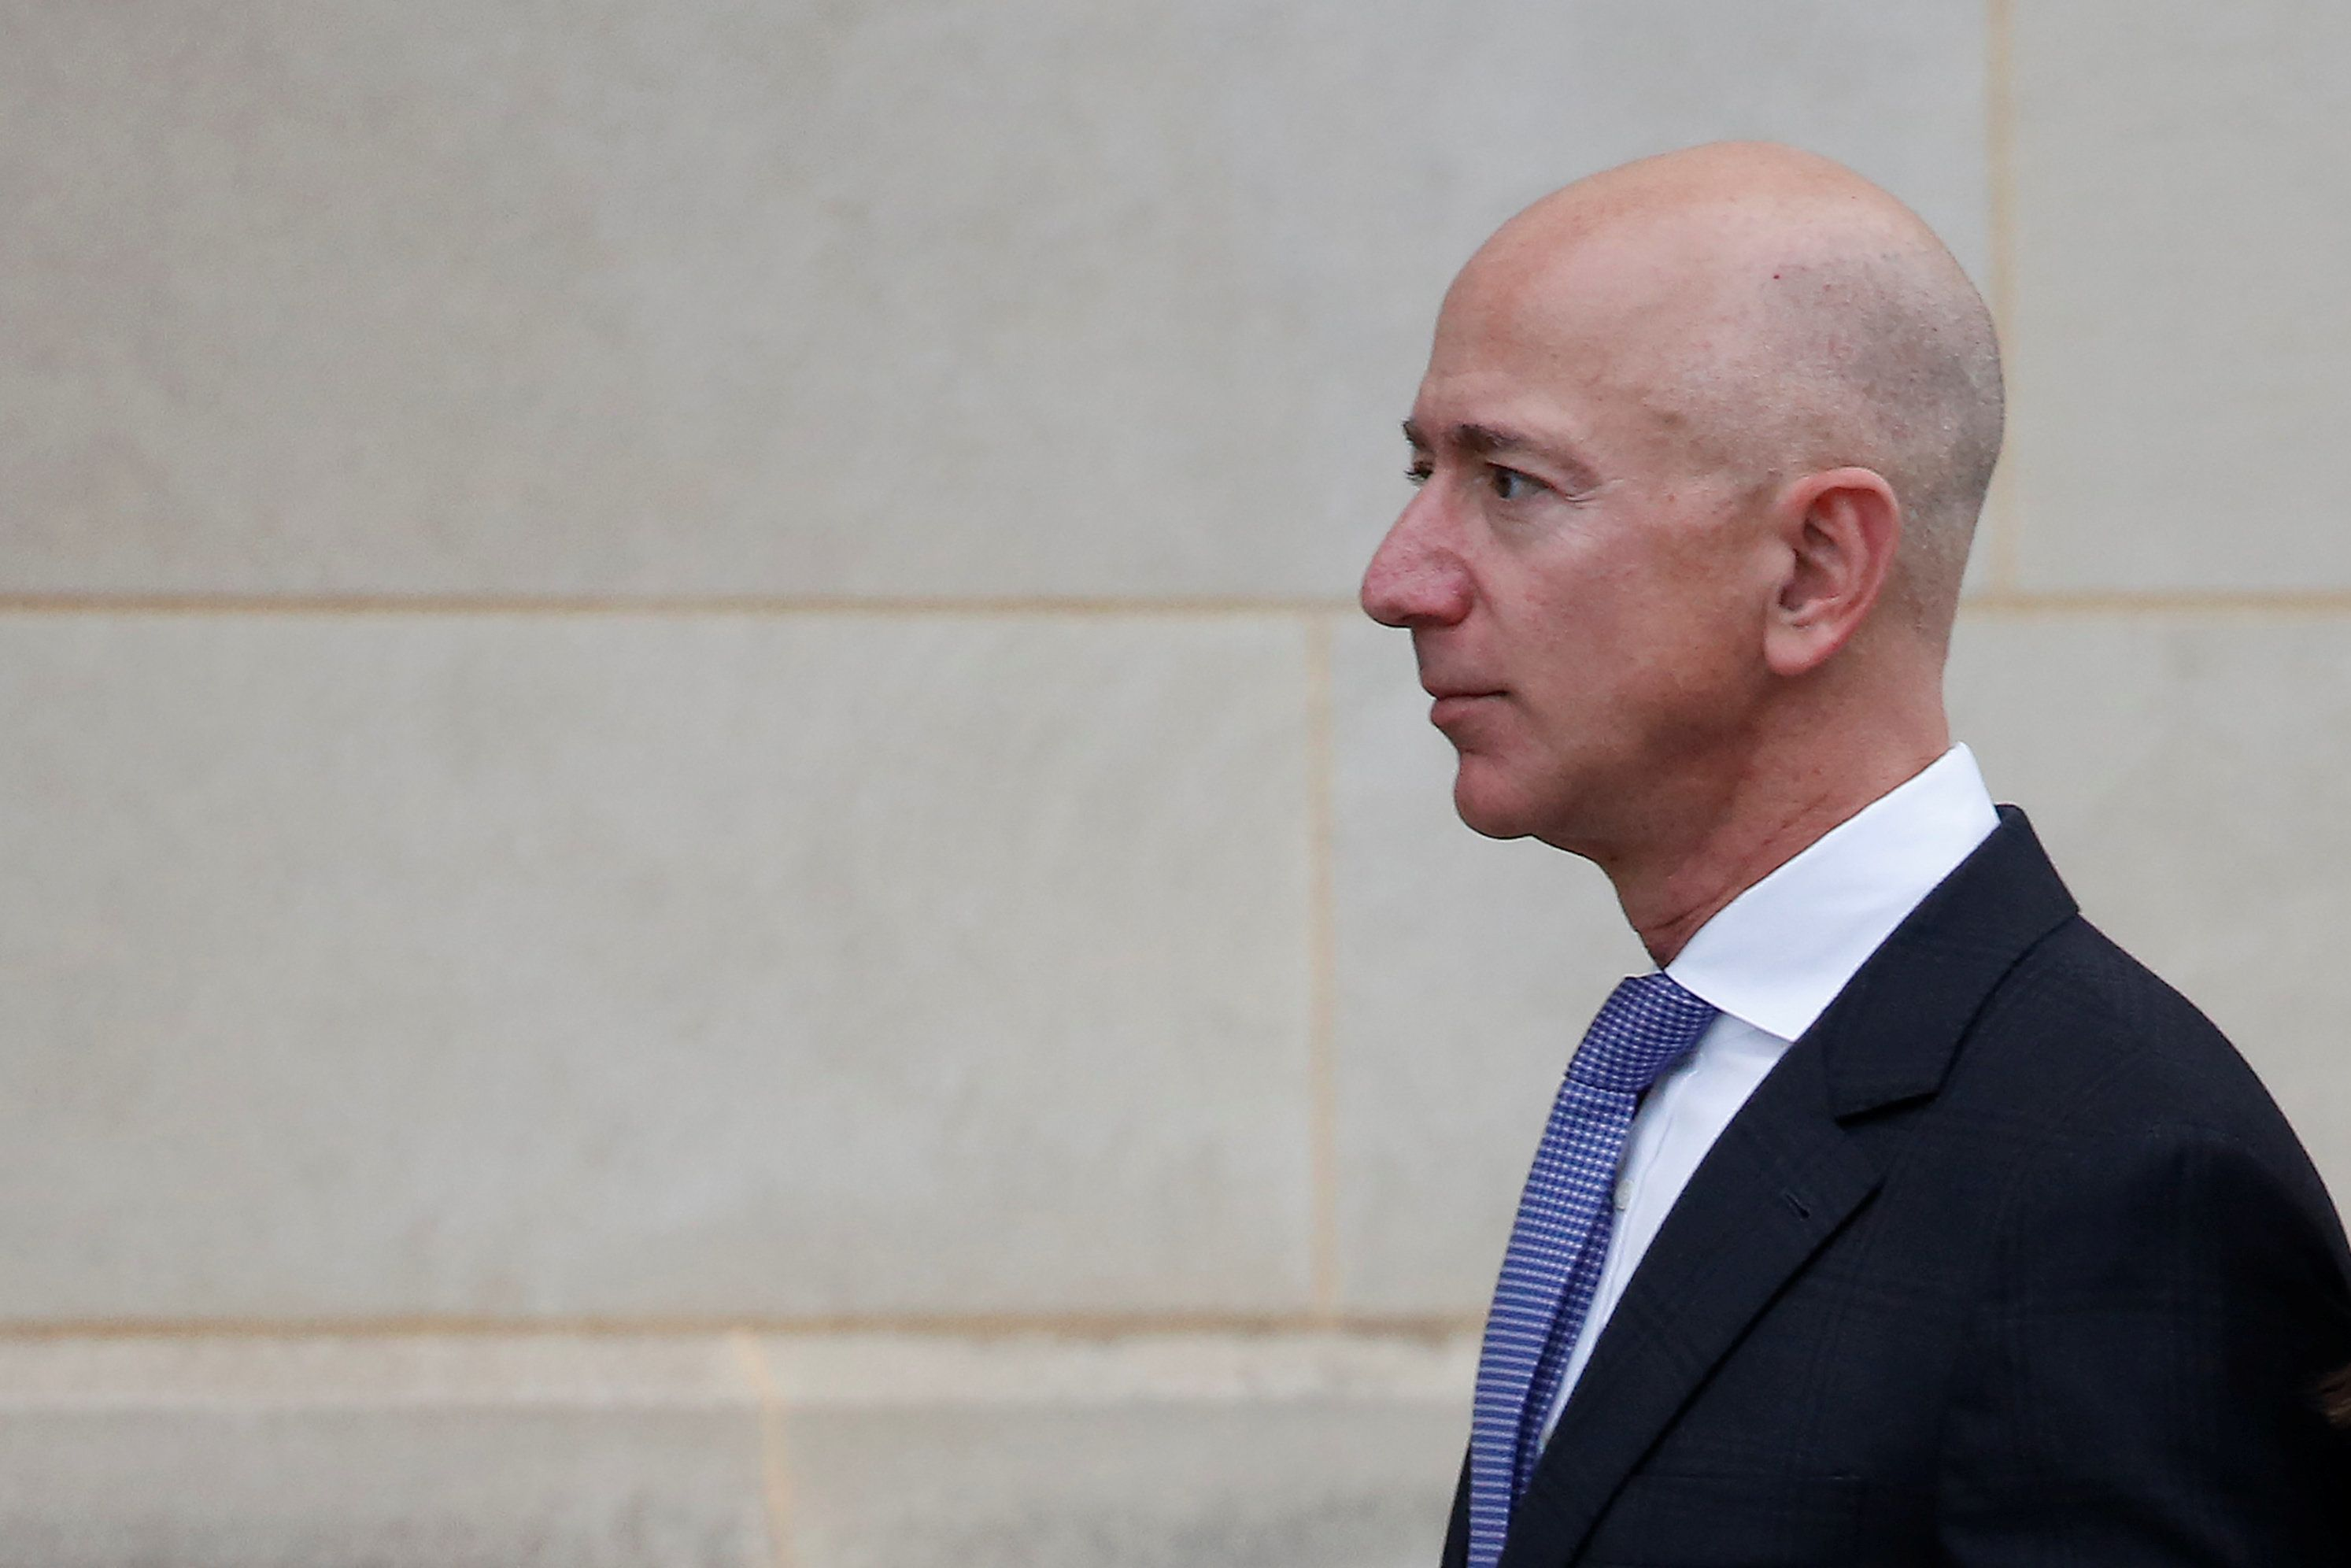 Bernie Sanders Introduces Bill Targeting Jeff Bezos